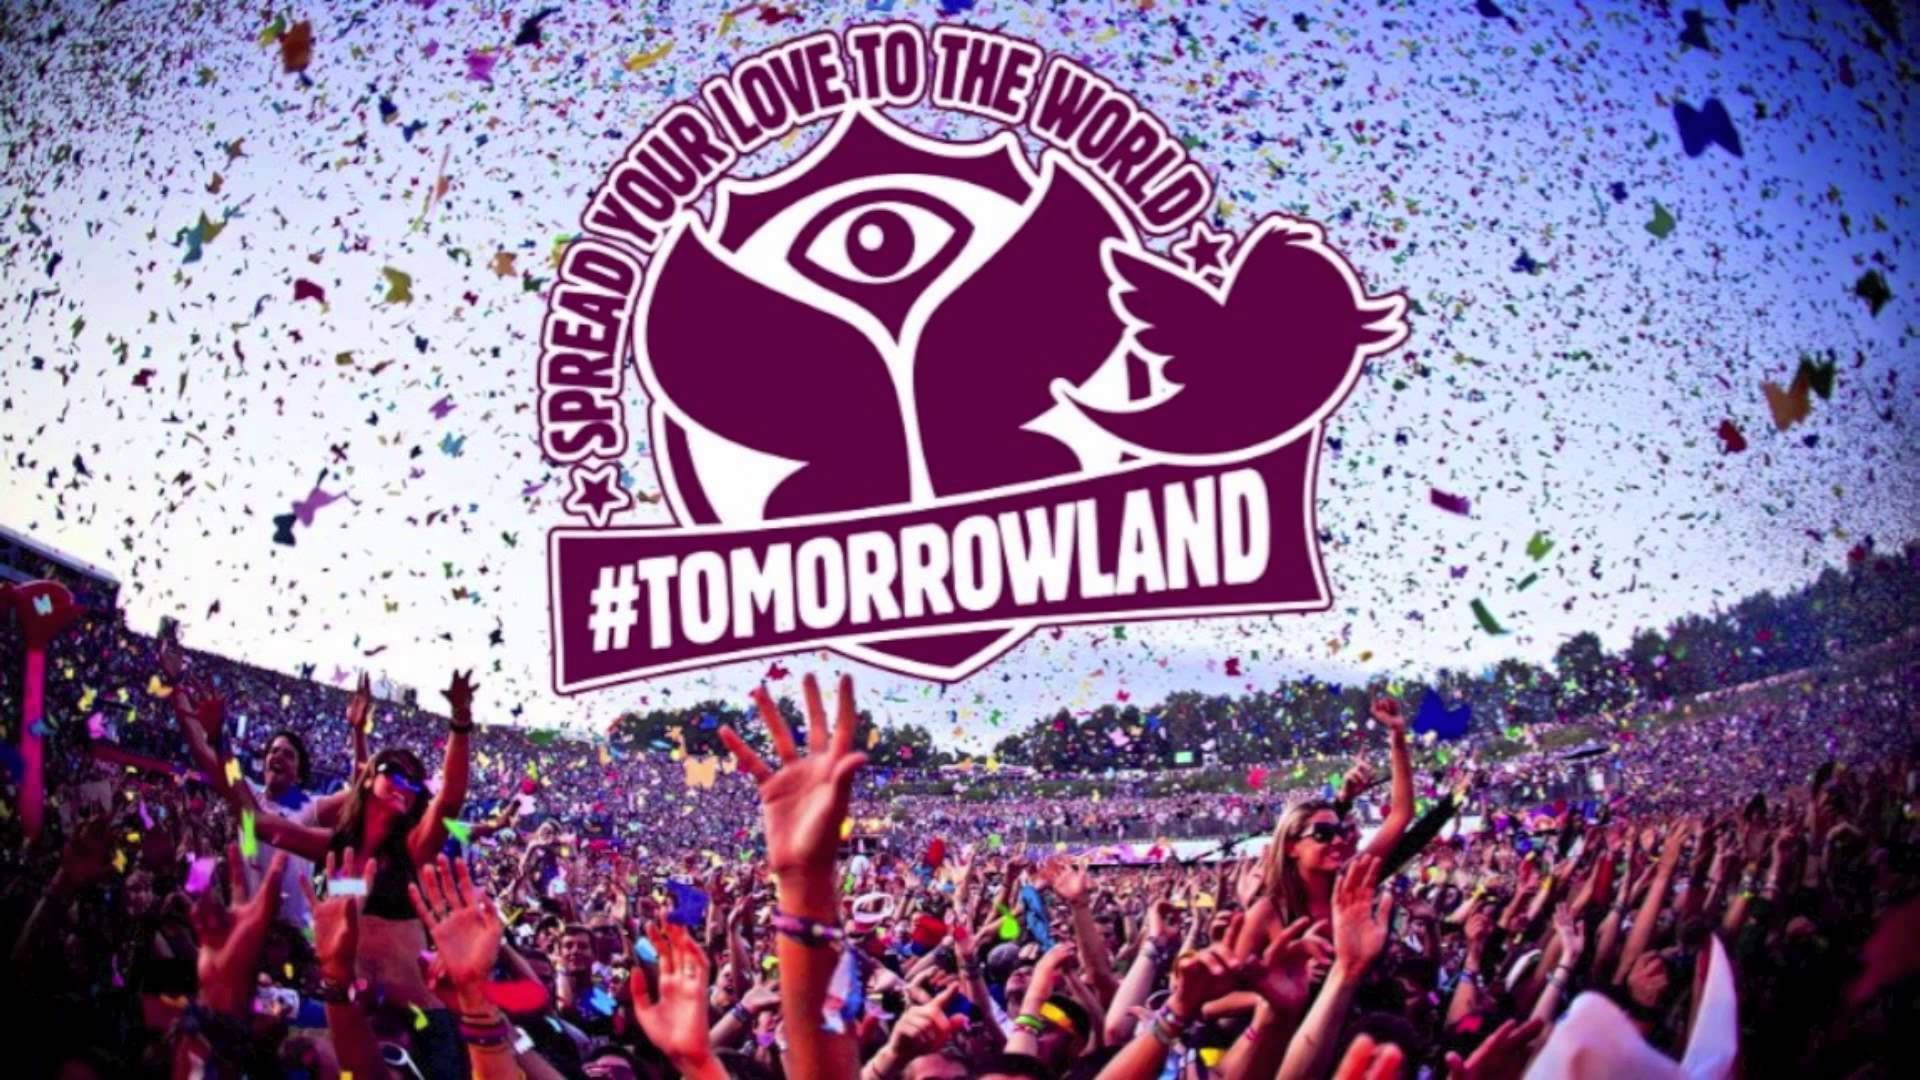 Tomorrowland Logo Hd Free Wallpapers Download Tomorrowland